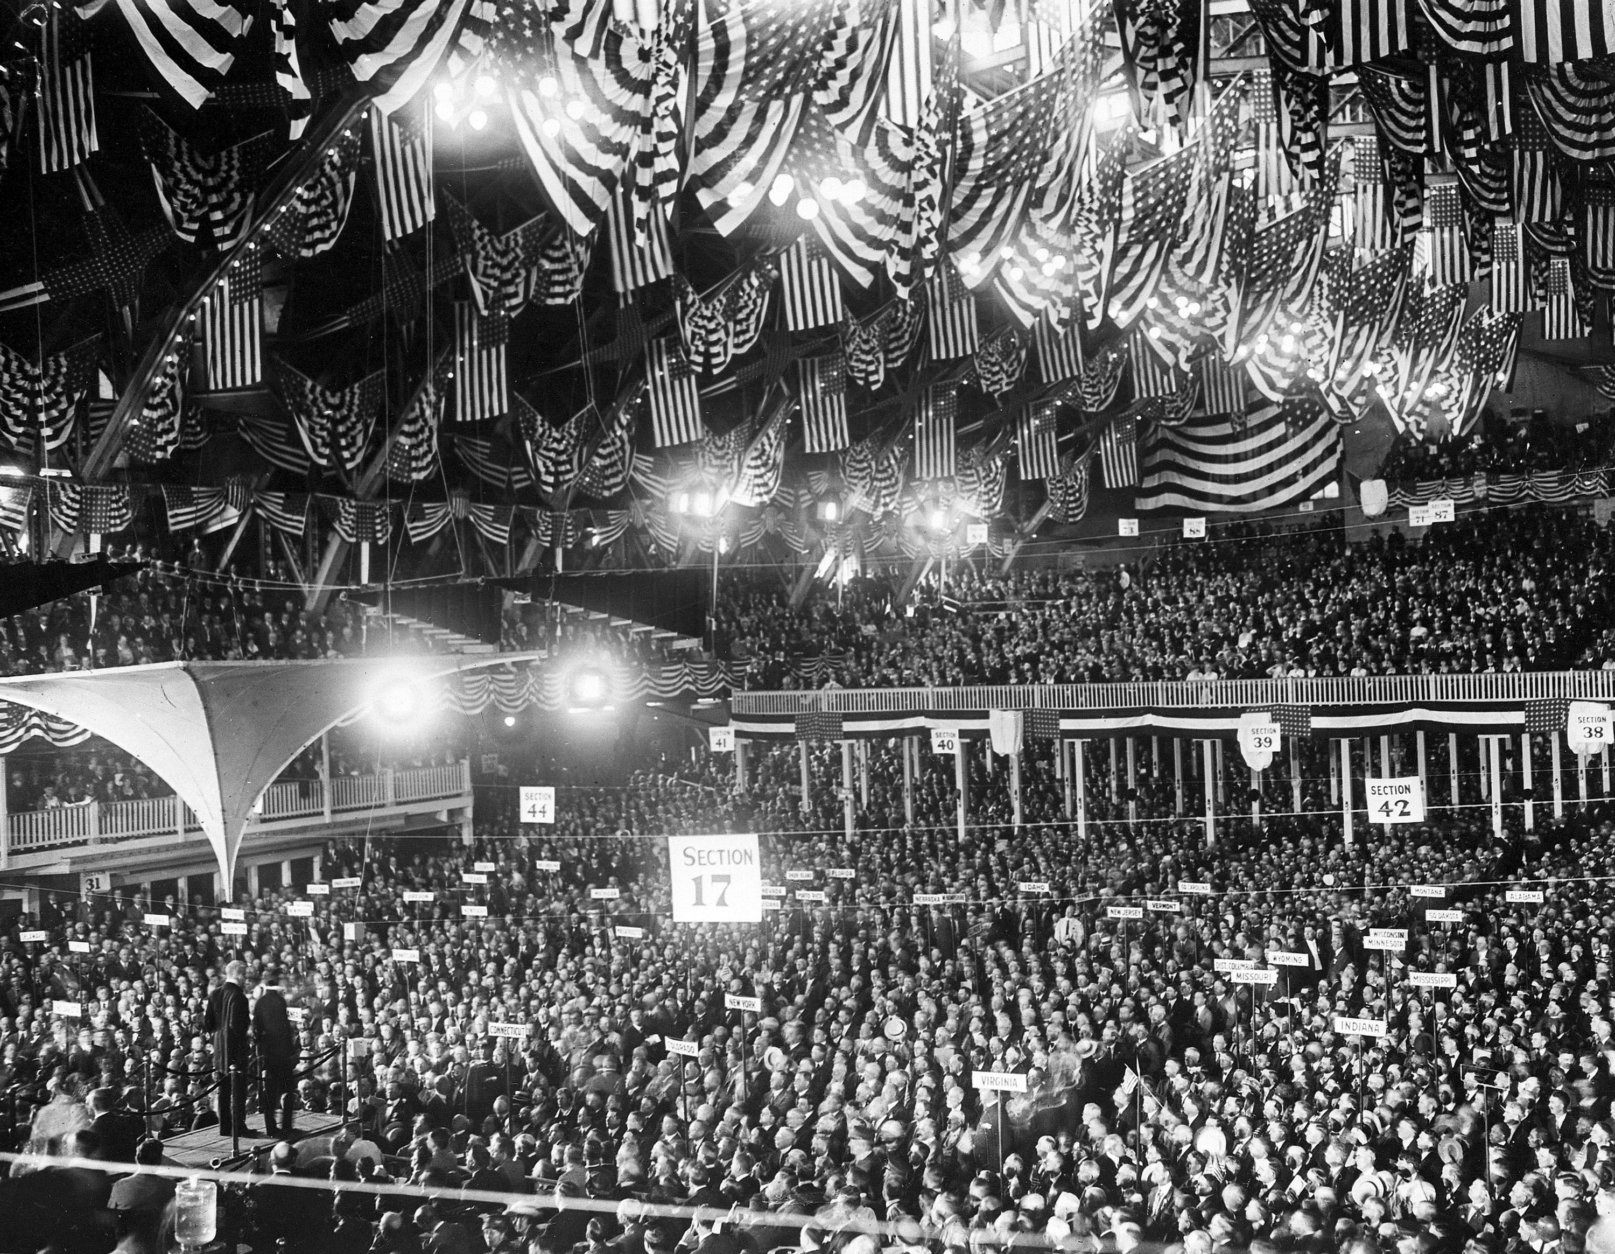 This is a general view during the opening of the Republican National Convention in the Coliseum in Chicago, Ill., June 8, 1920.  (AP Photo)